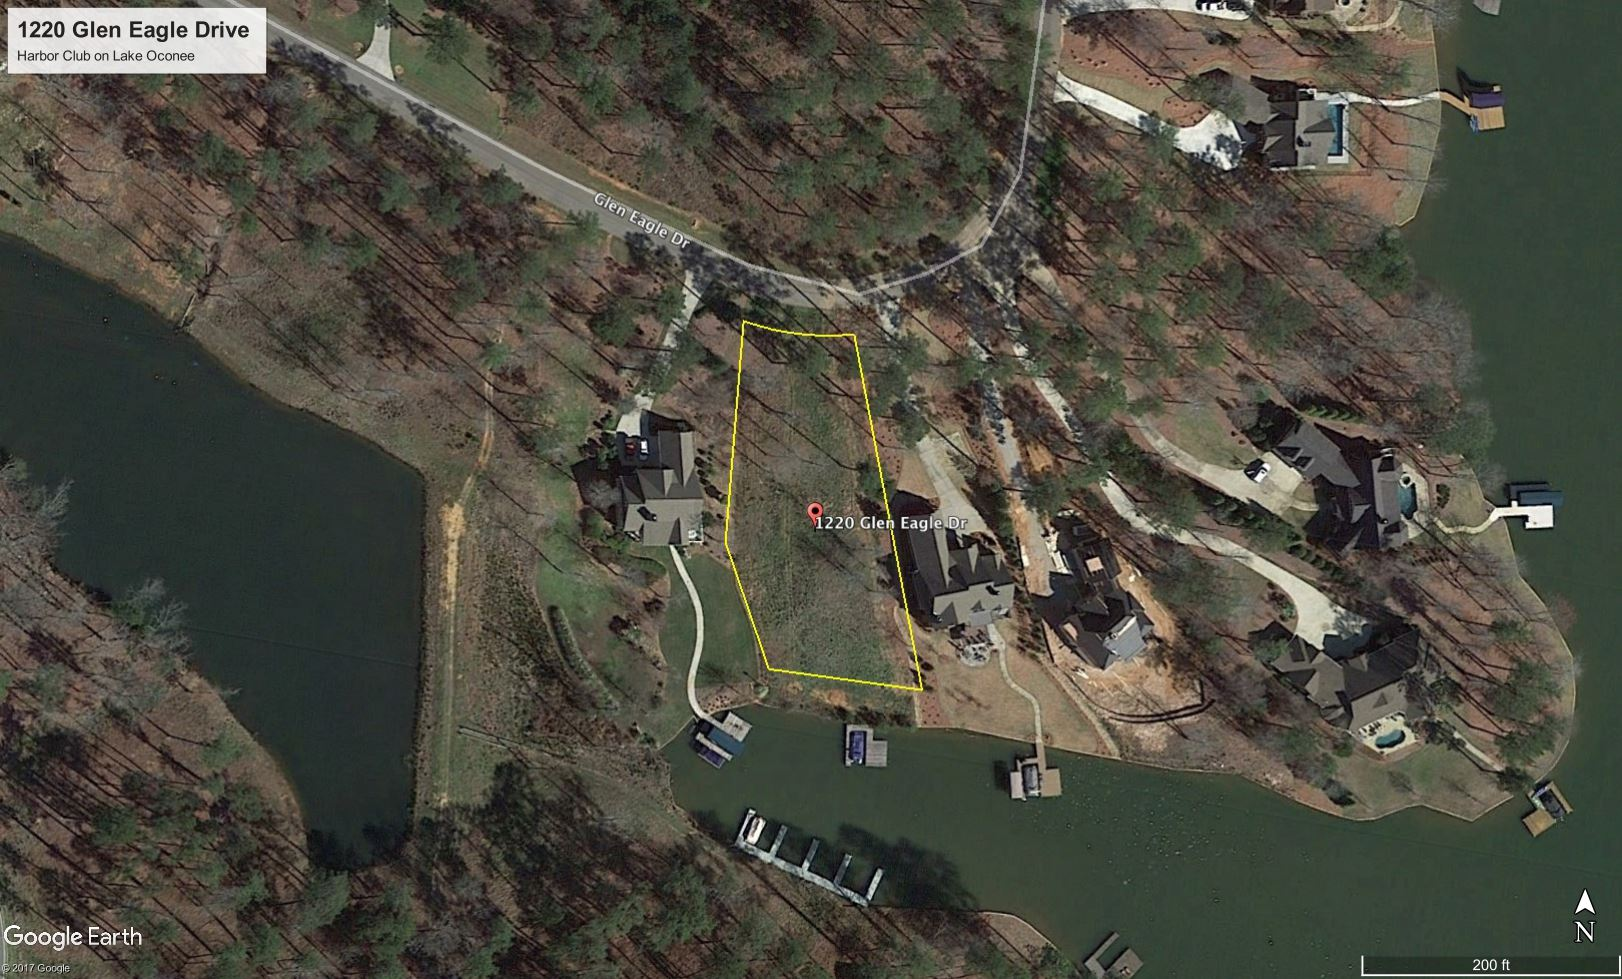 1220 GLEN EAGLE DRIVE AS, one of homes for sale in Lake Oconee Harbor Club